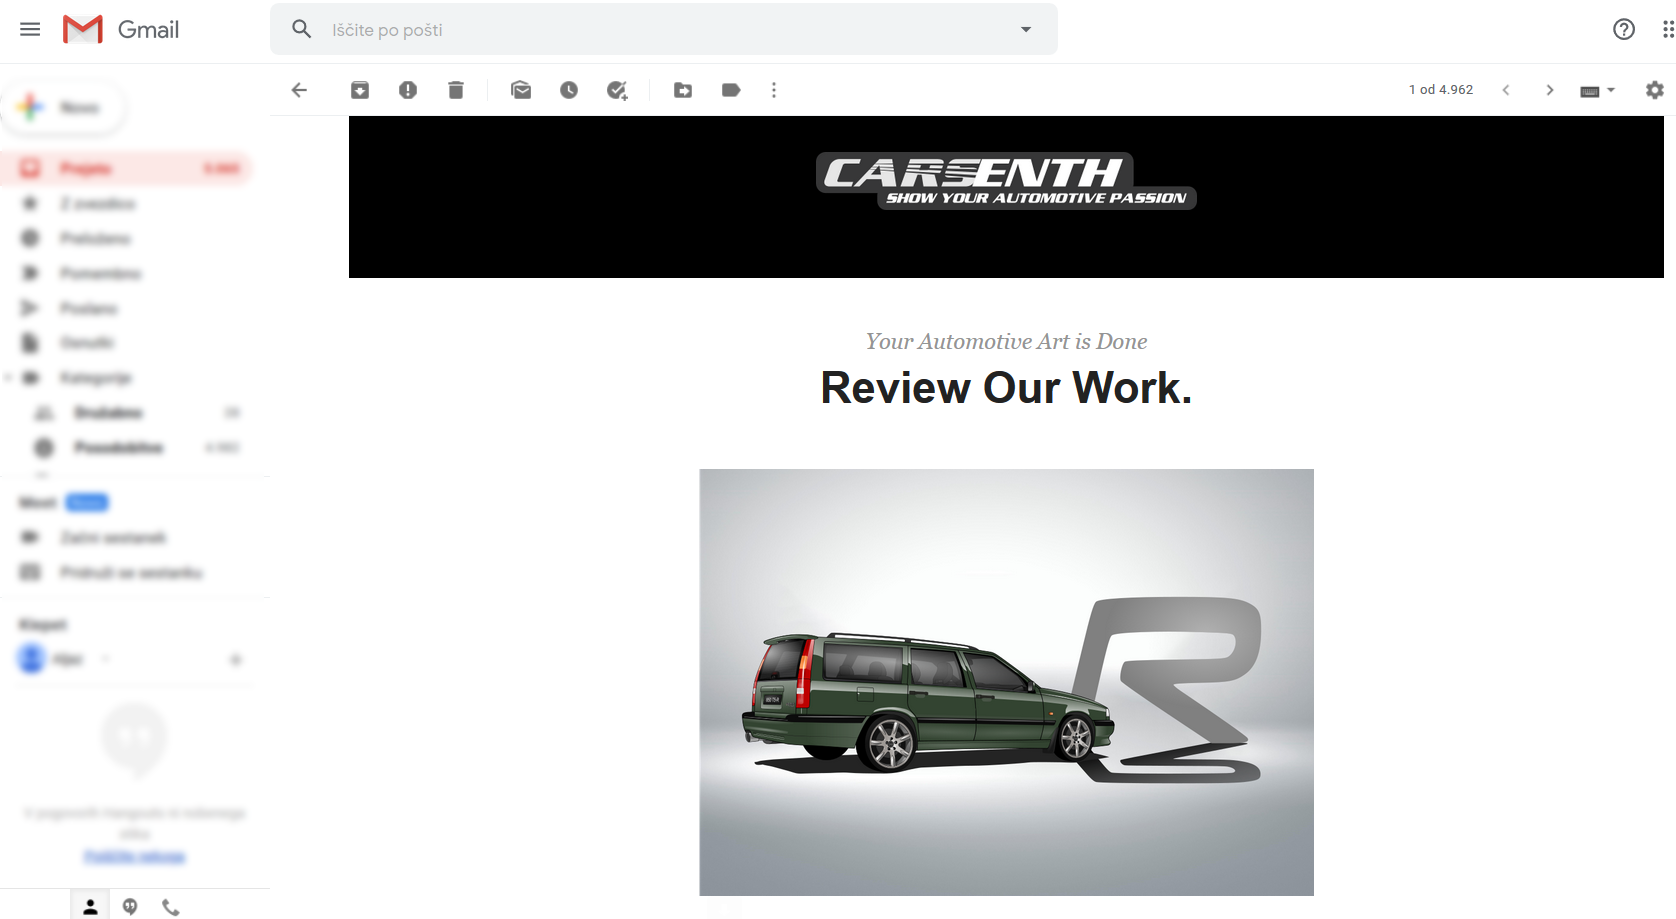 CarsEnth - Review our work and confirm your order